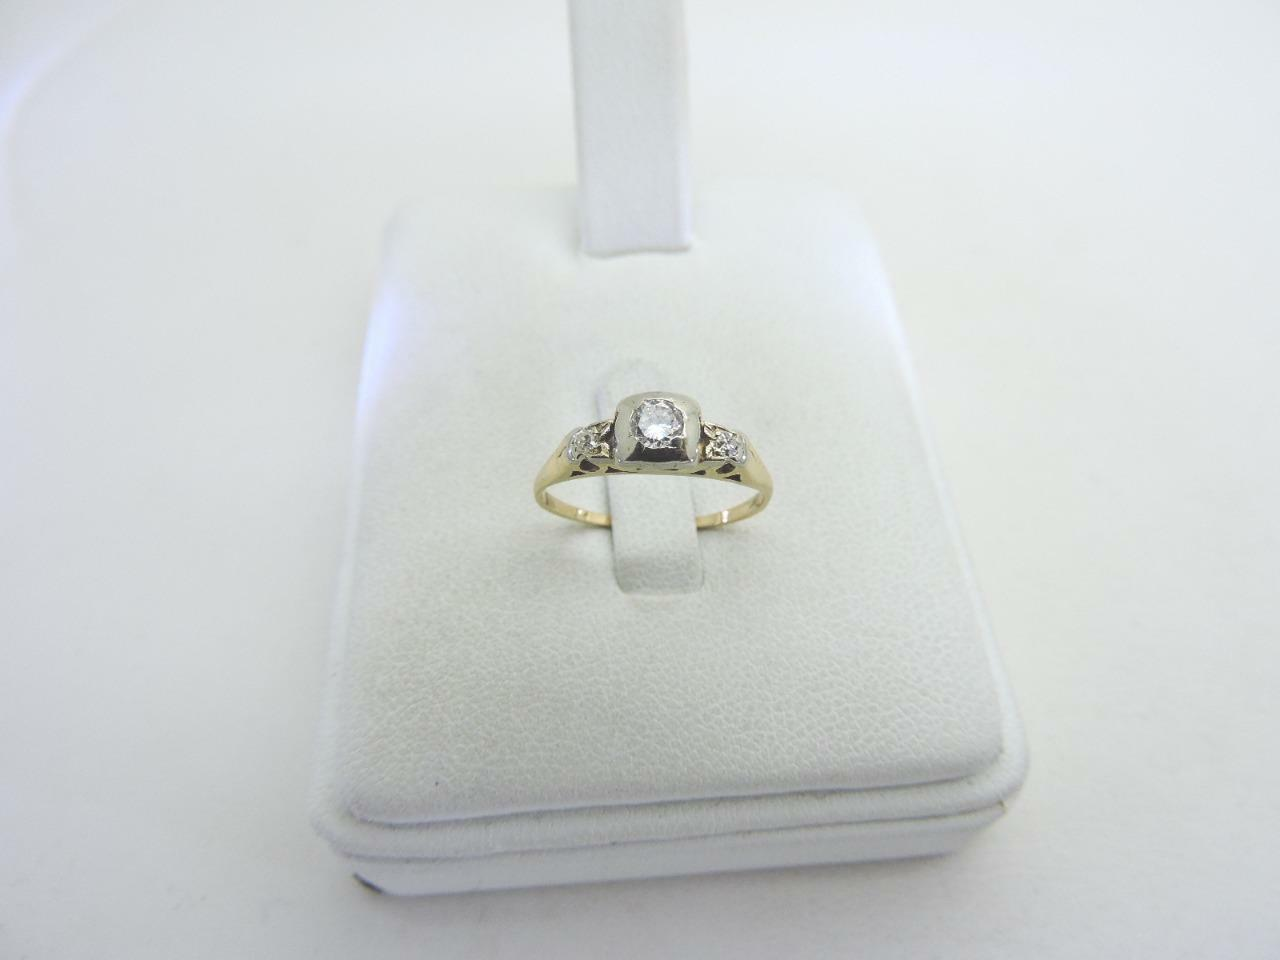 14K Yellow gold Engagement 0.20 Diamond Ring Vintage Dainty 1.8 G Size 6.25